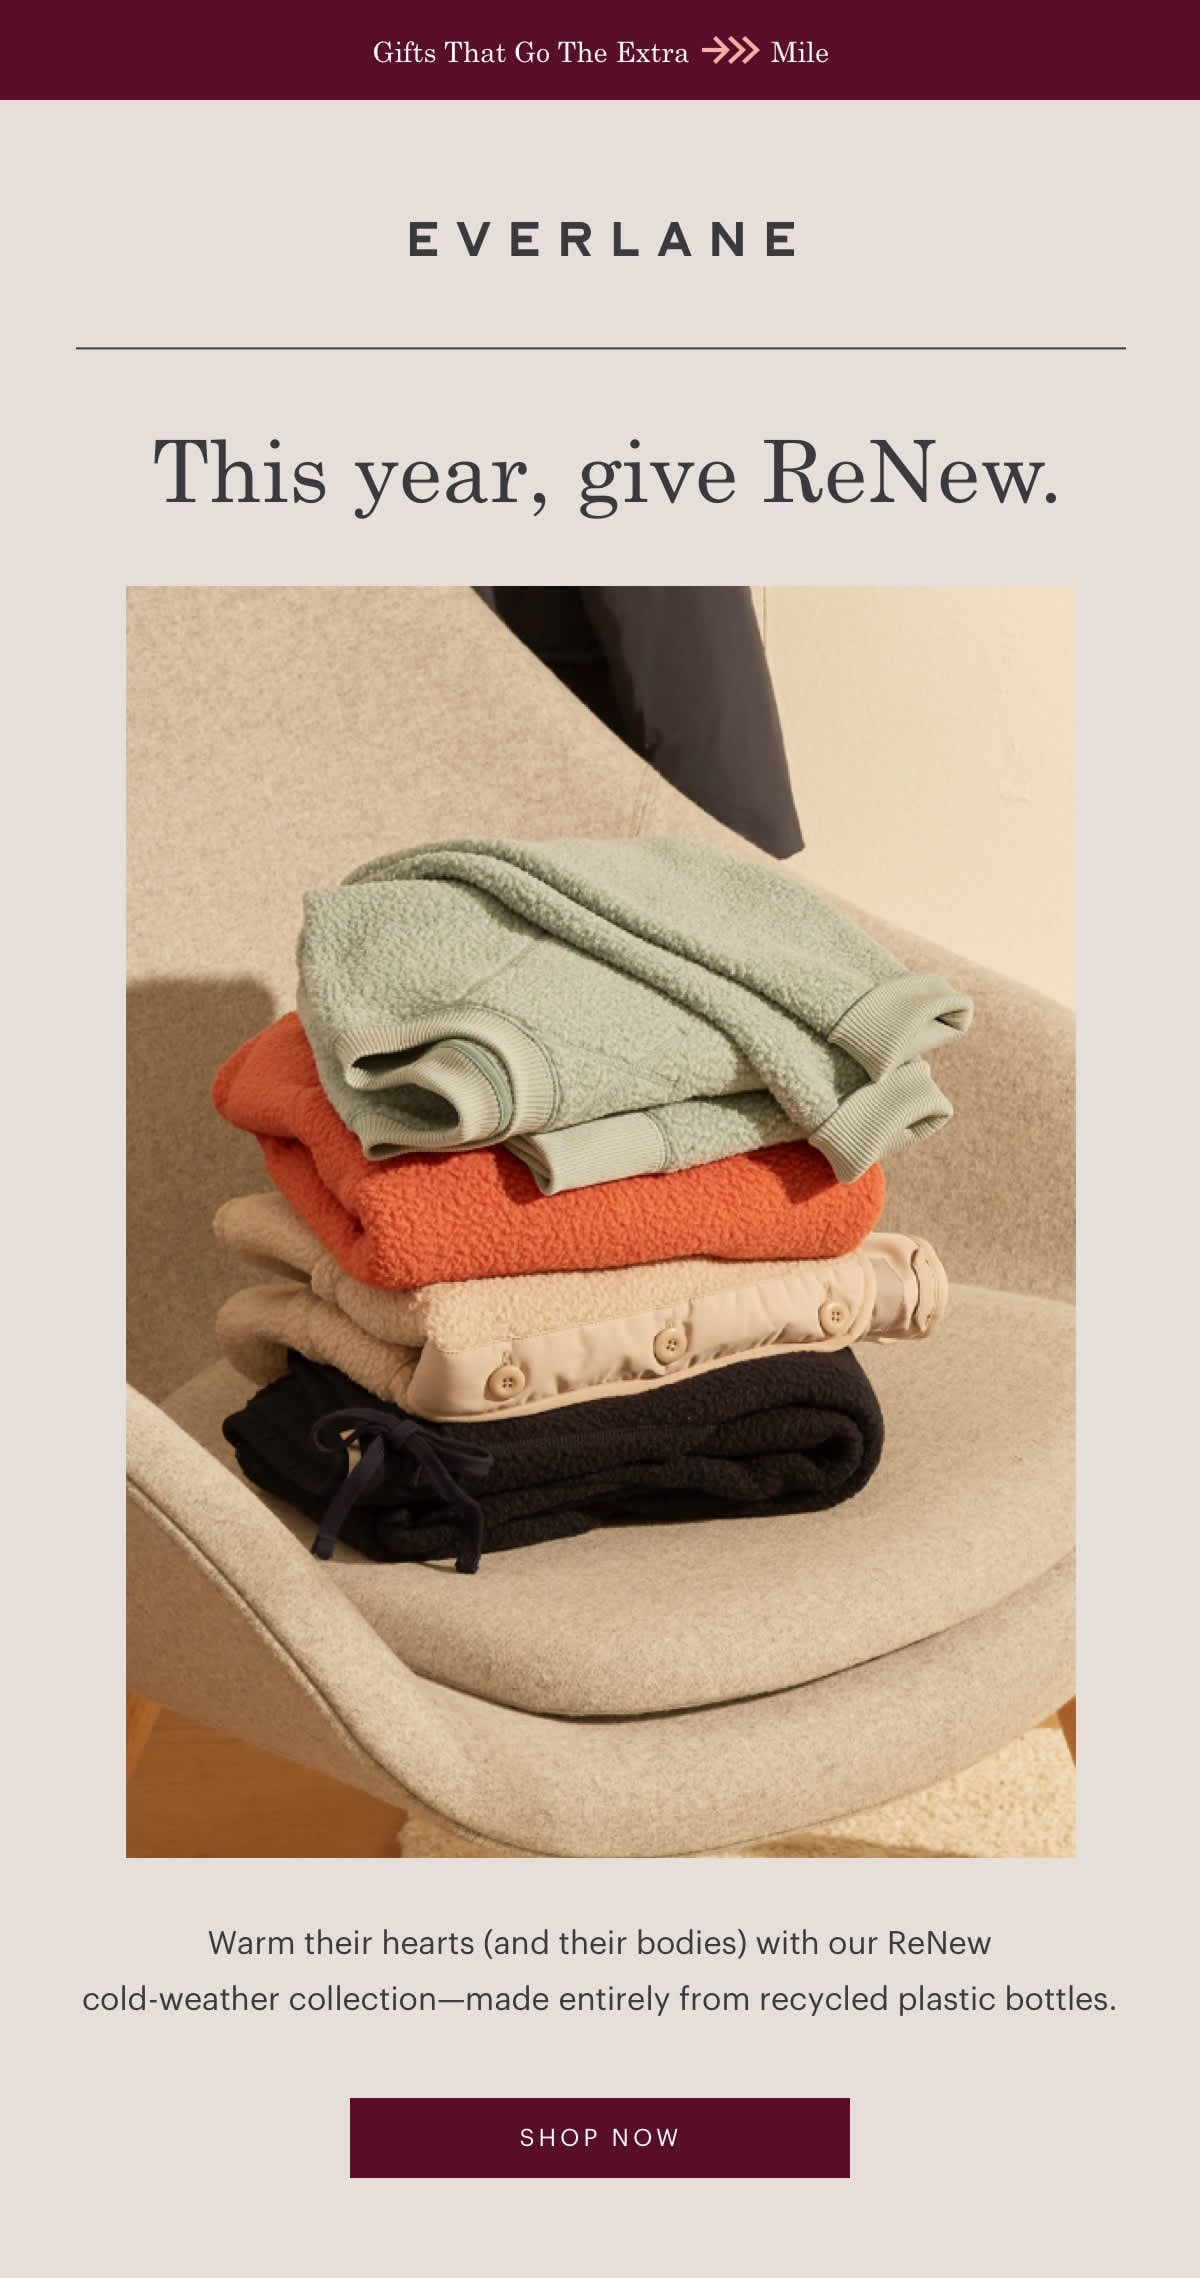 Everlane Holiday 2019 Gift Guide: Everlane ReNew Collection